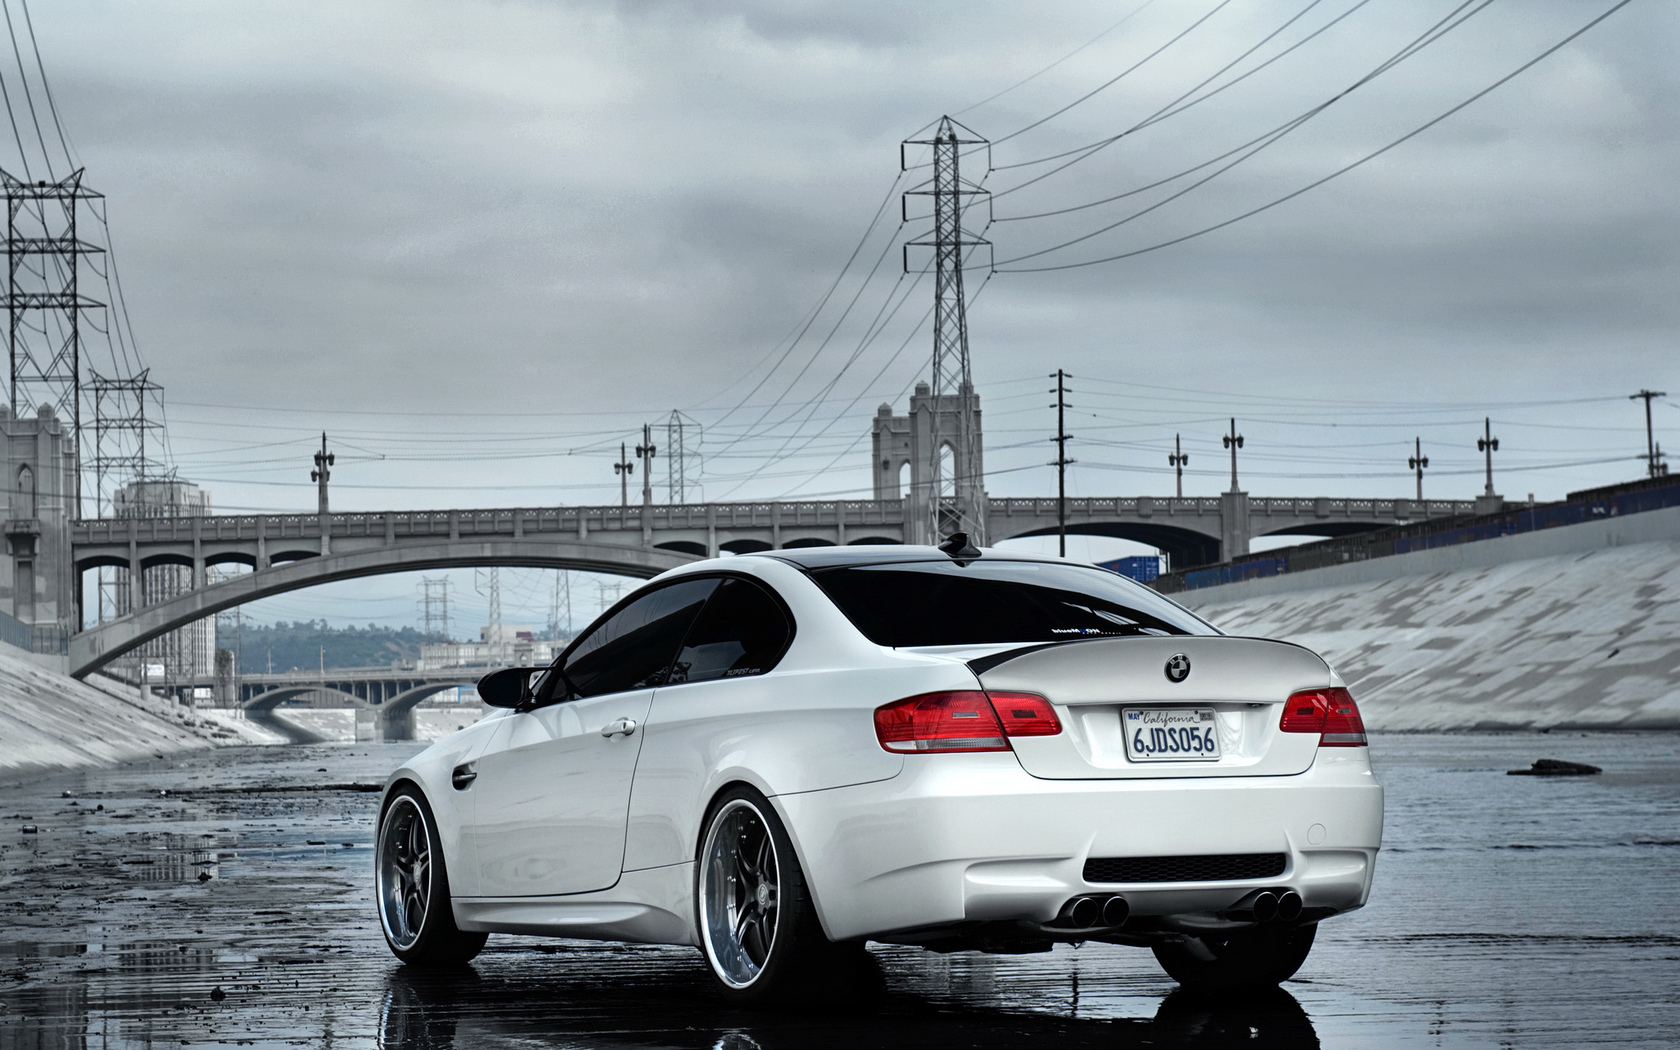 e92, bmw, m3, bridge